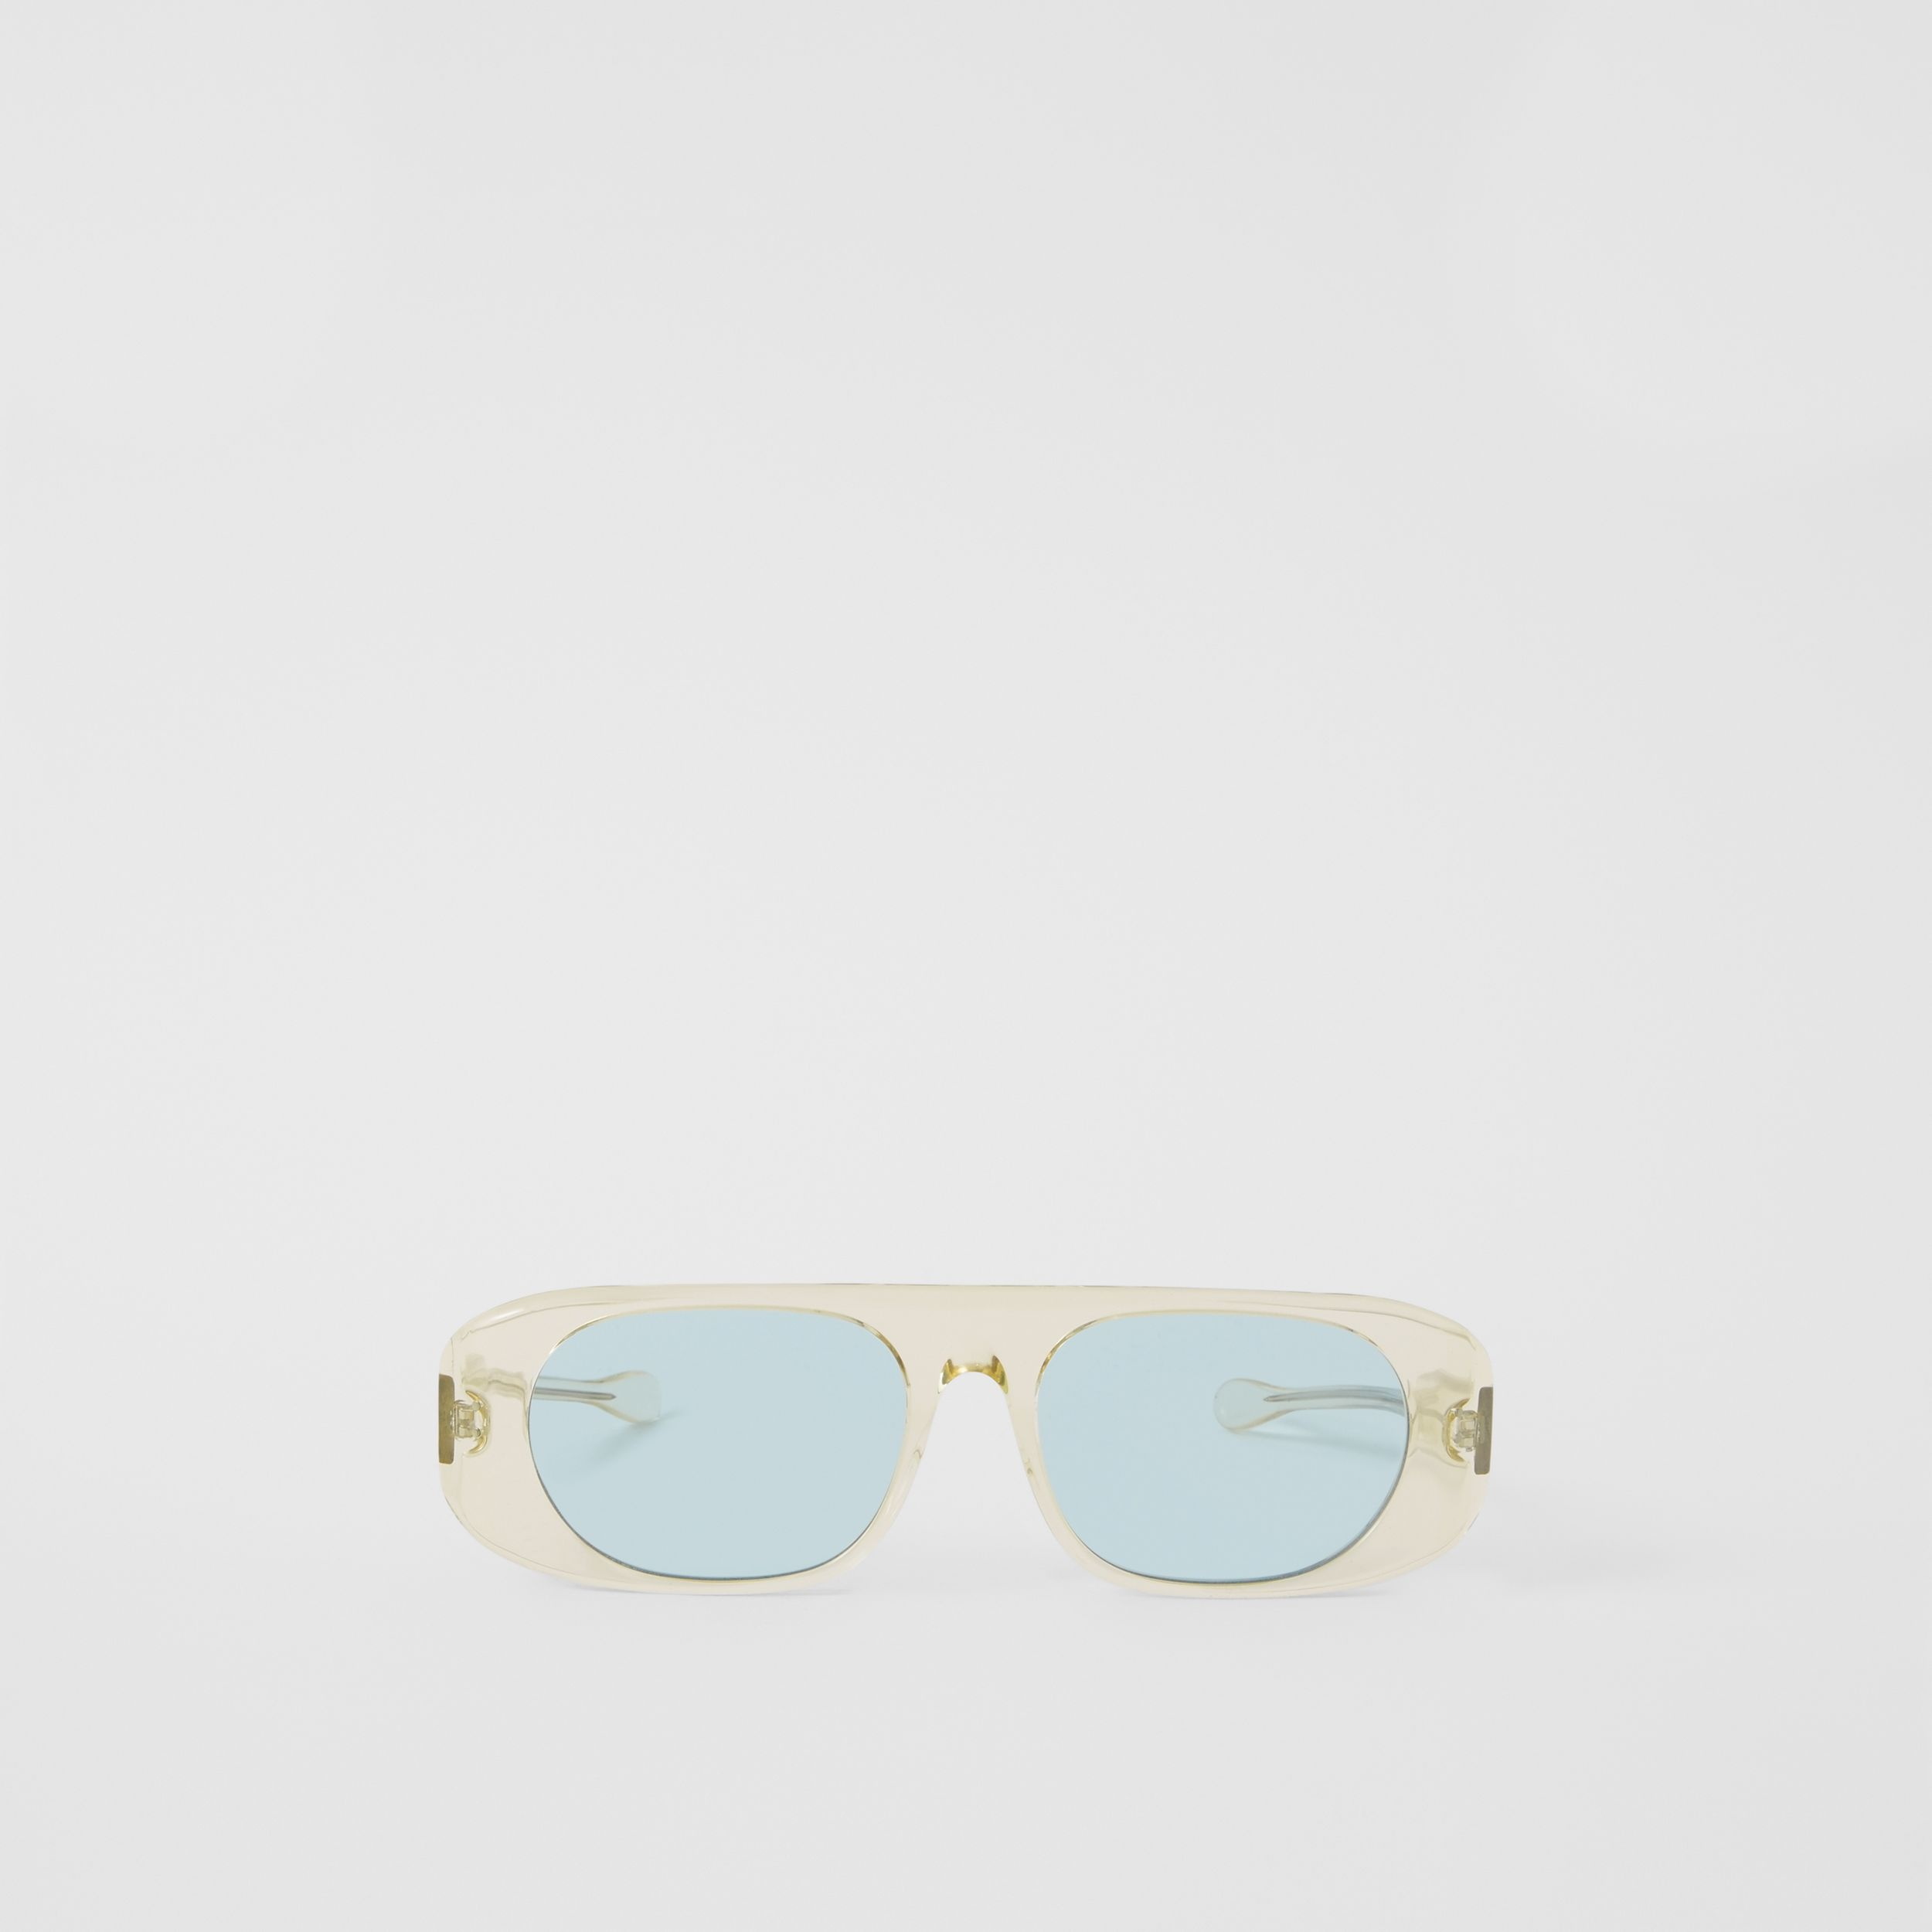 Blake Sunglasses in Transparent Champagne | Burberry Australia - 1